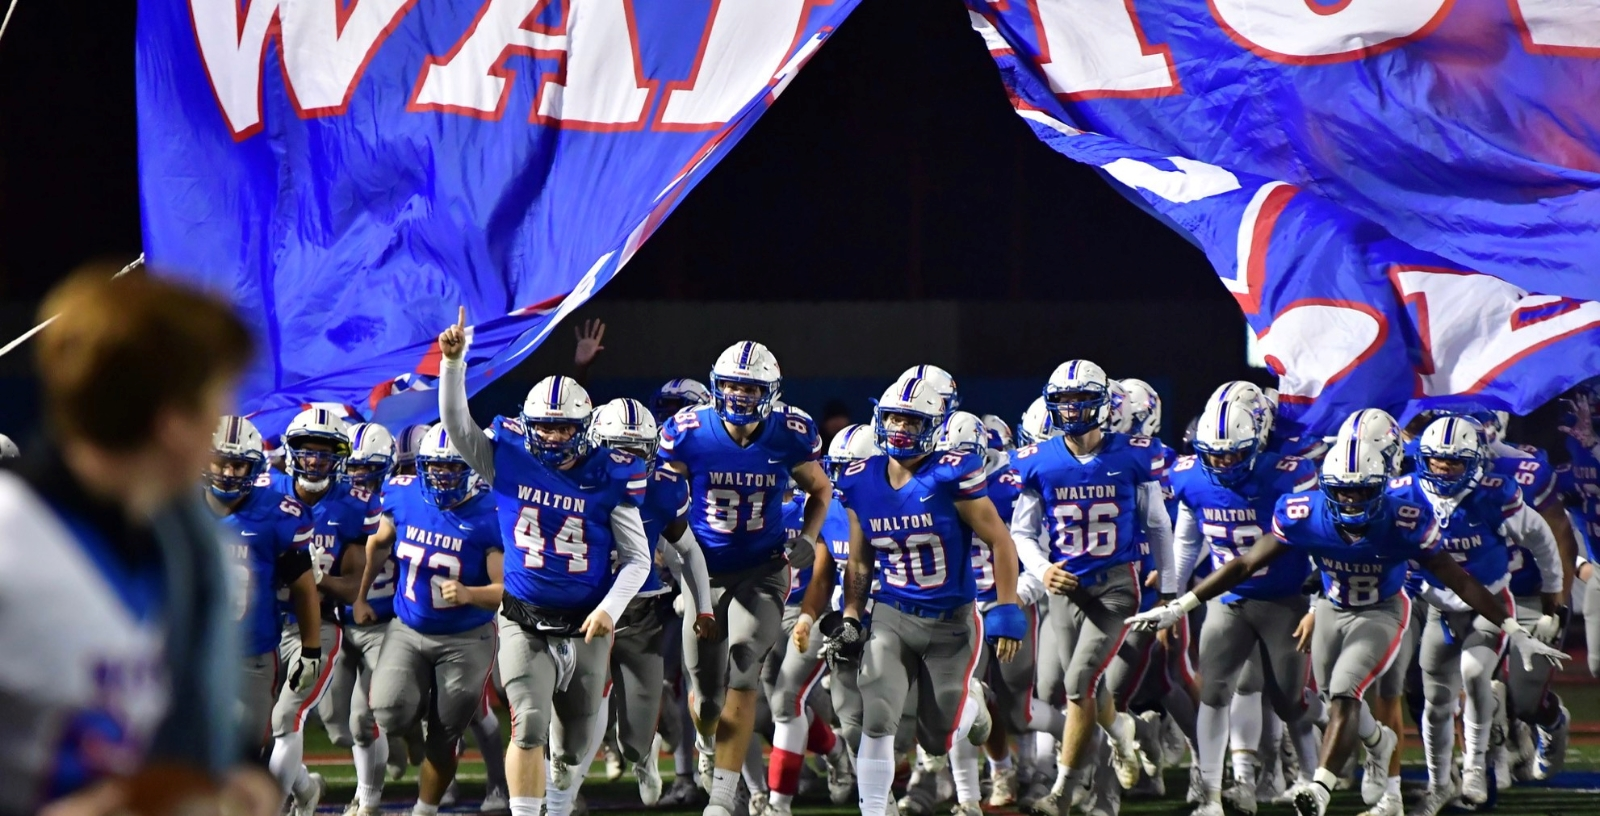 Raiders Win Rematch to Move on to Second Round